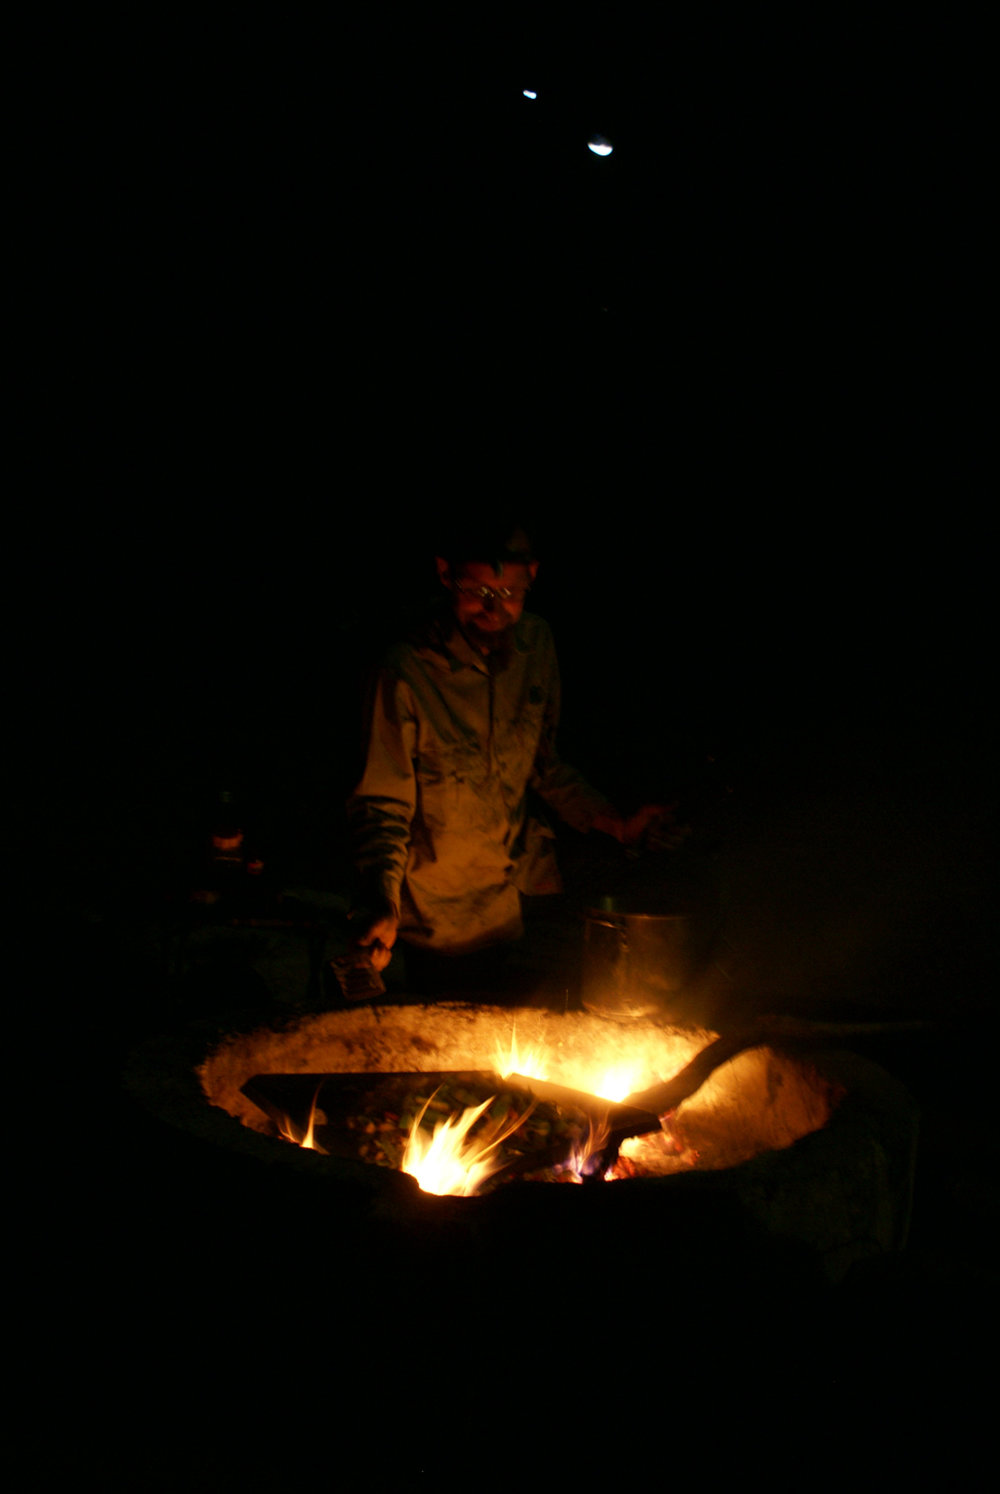 The nightly campfire